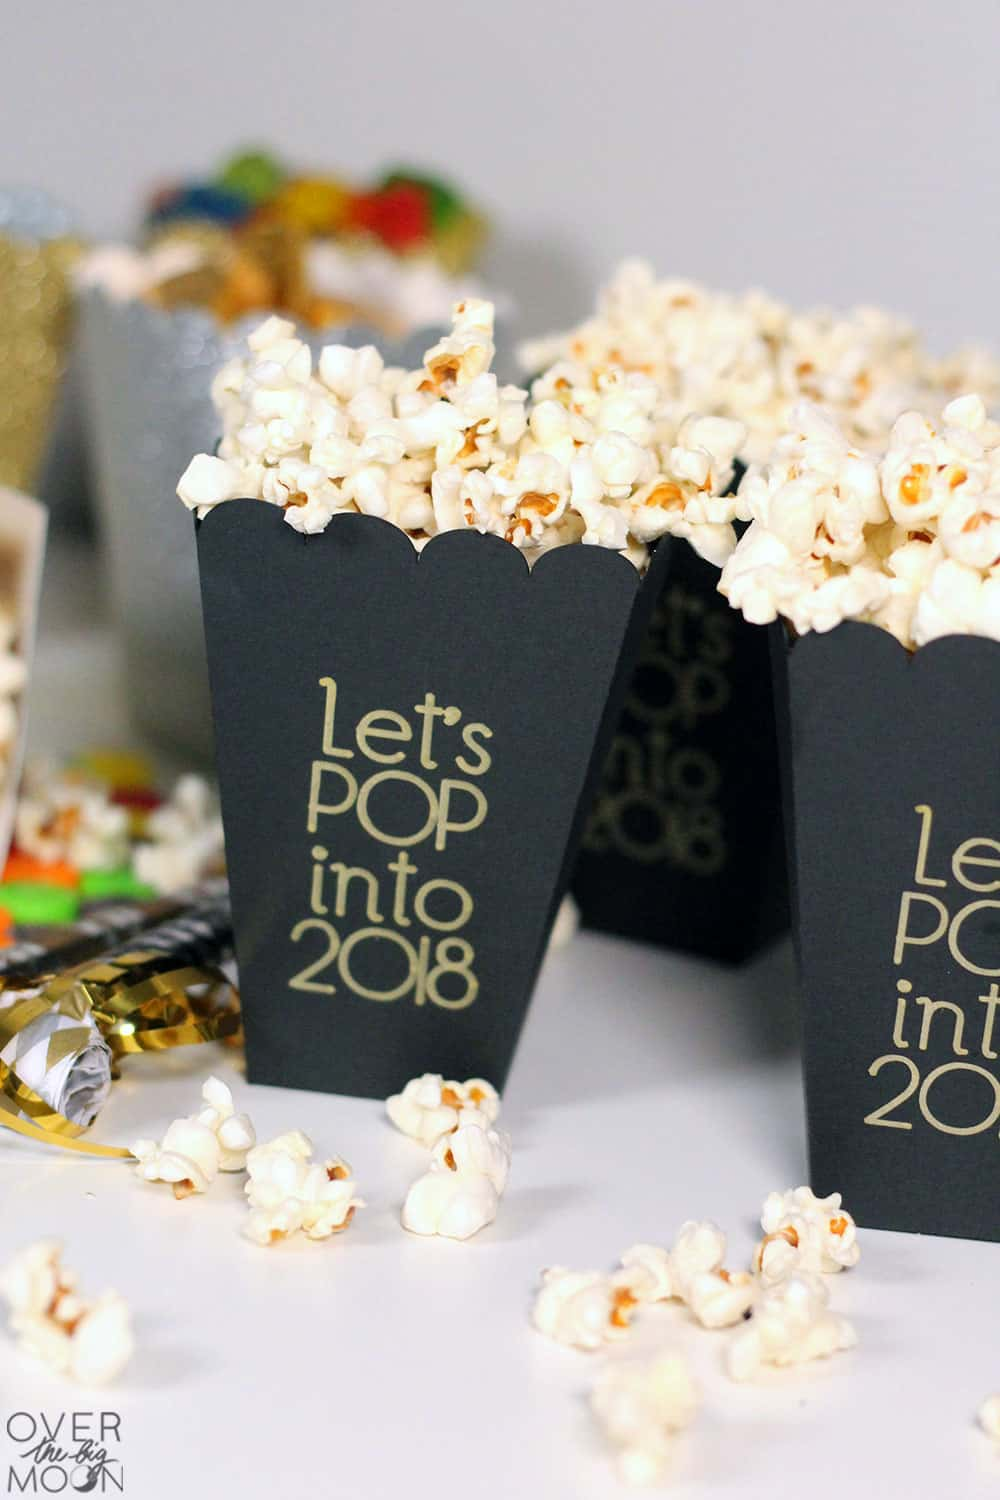 Let's POP into 2018 - popcorn treat boxes! From overthebigmoon.com!